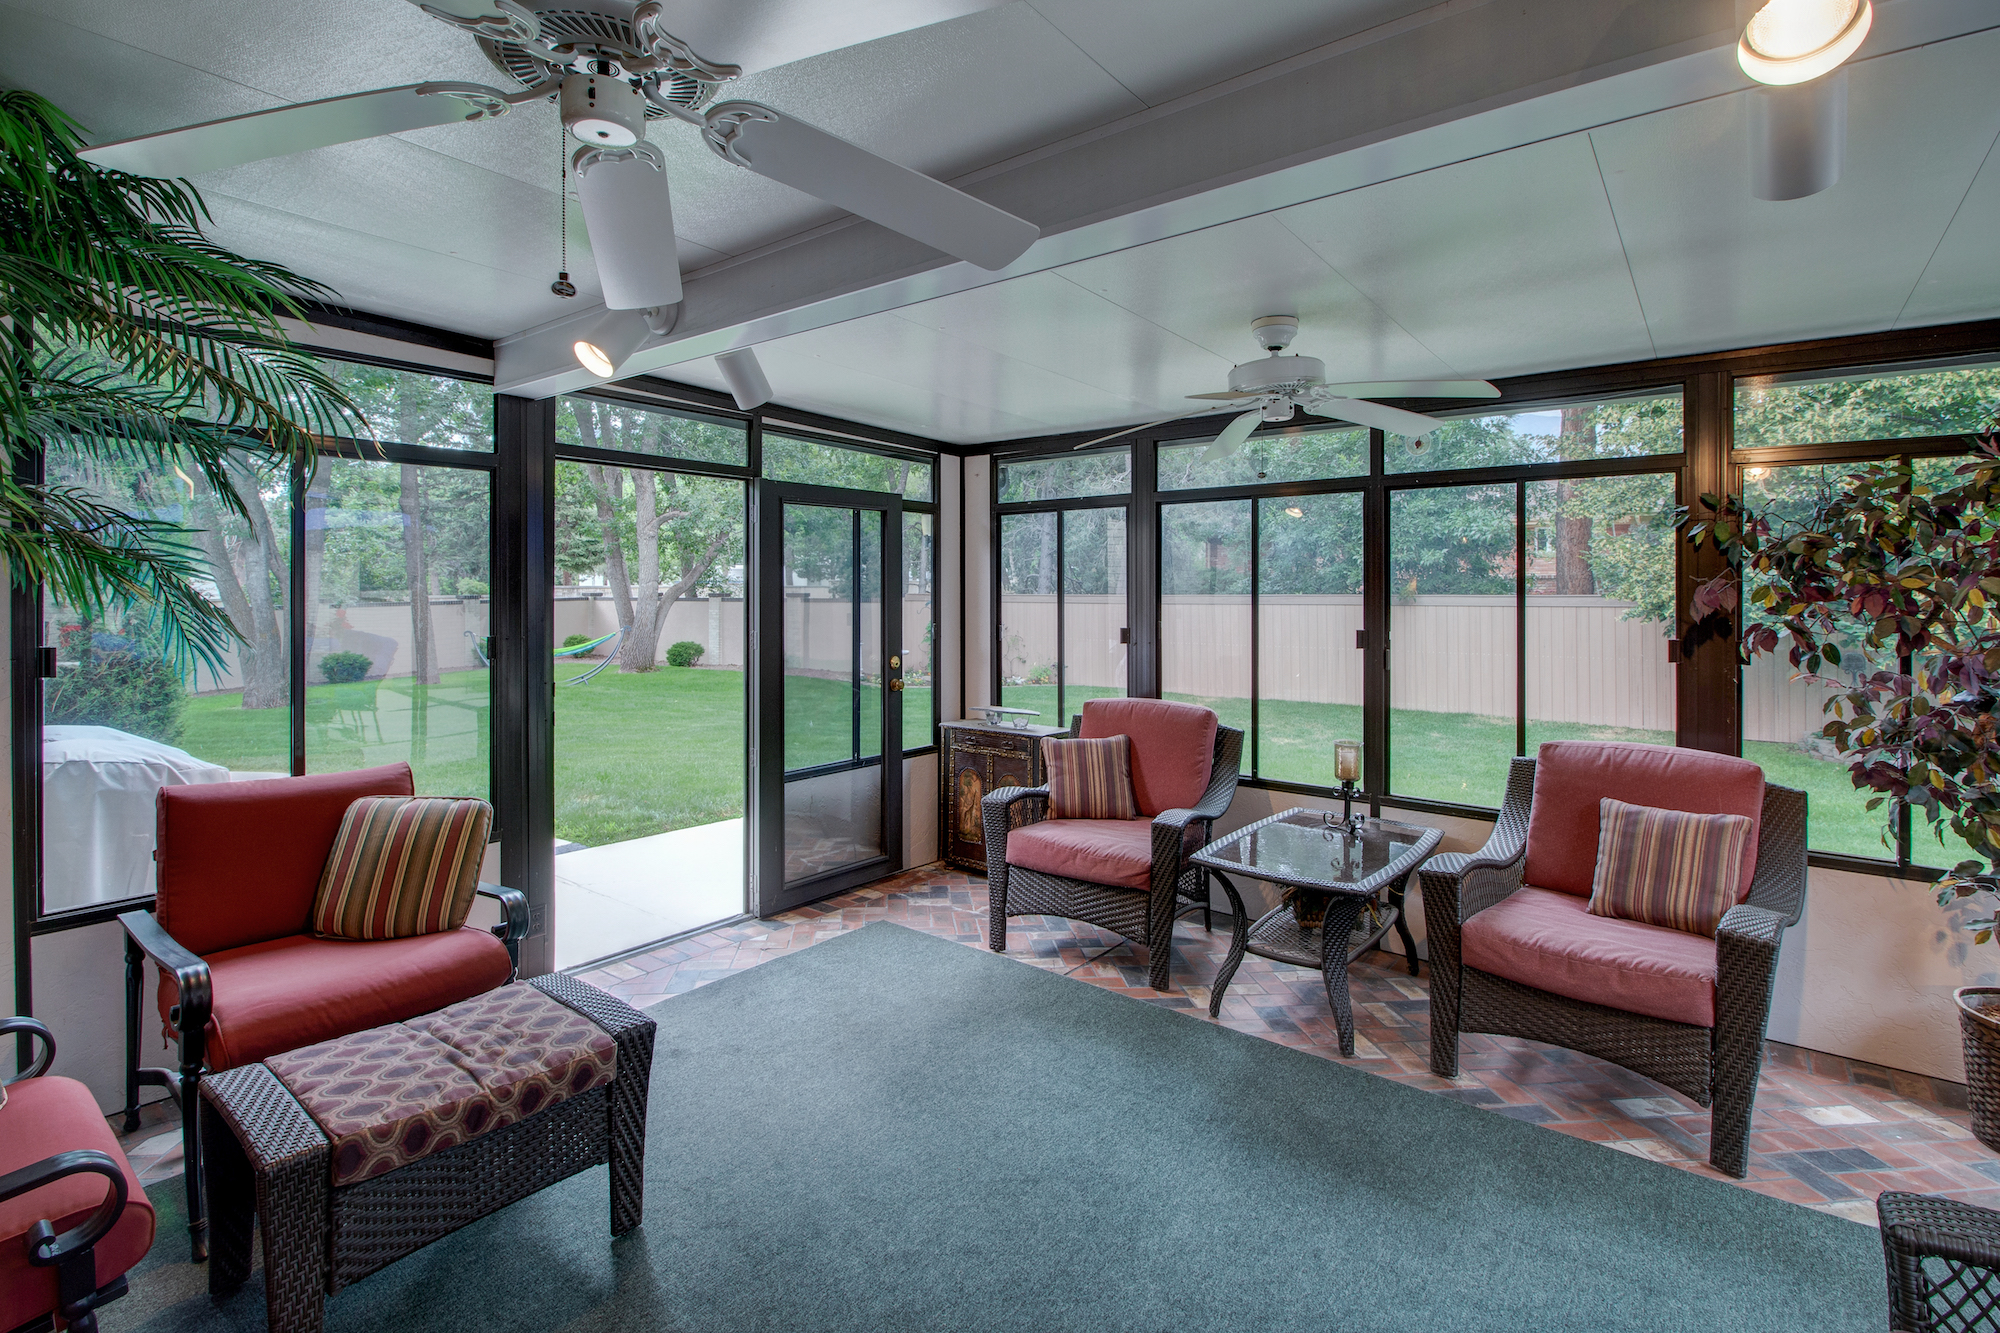 9-Sunroom opens to lush yard on the left.jpg